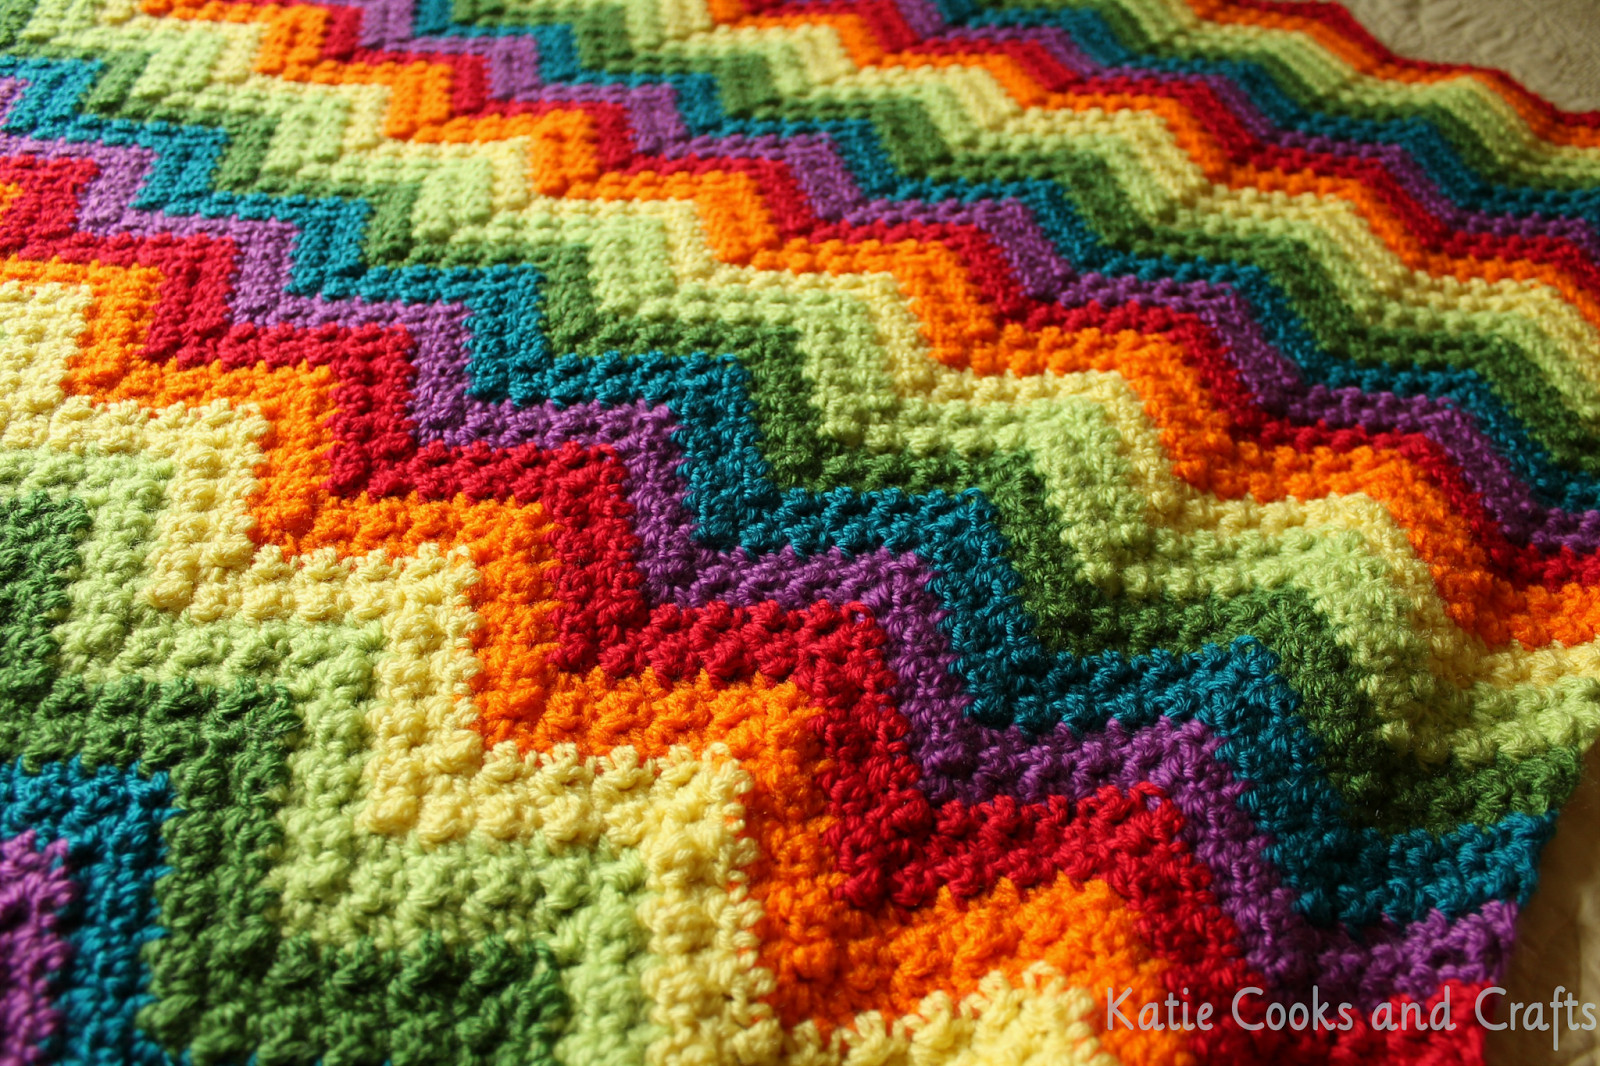 Inspirational Katie Cooks and Crafts Rumpled Ripple Rainbow Crochet Afghan Stitch Patterns Of Beautiful 50 Pics Afghan Stitch Patterns